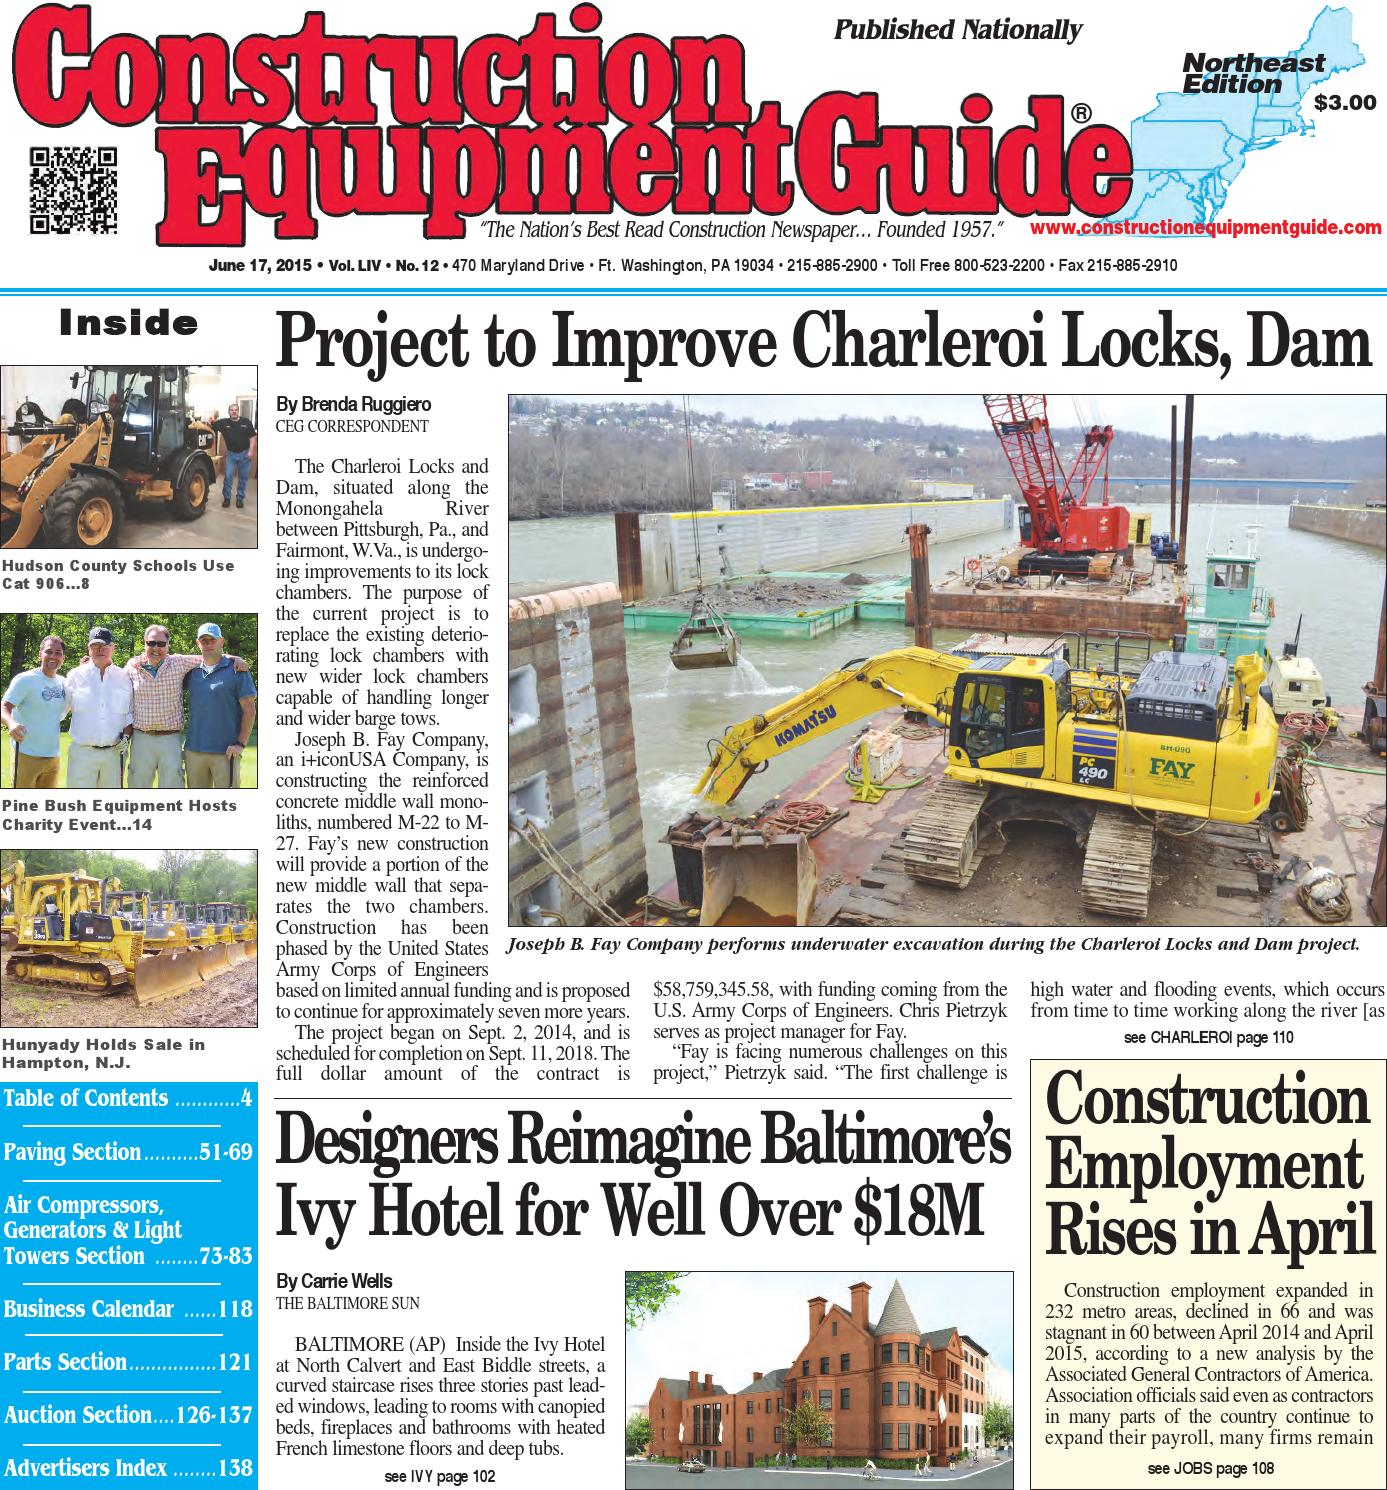 Northeast 12 2016 by construction equipment guide issuu fandeluxe Images